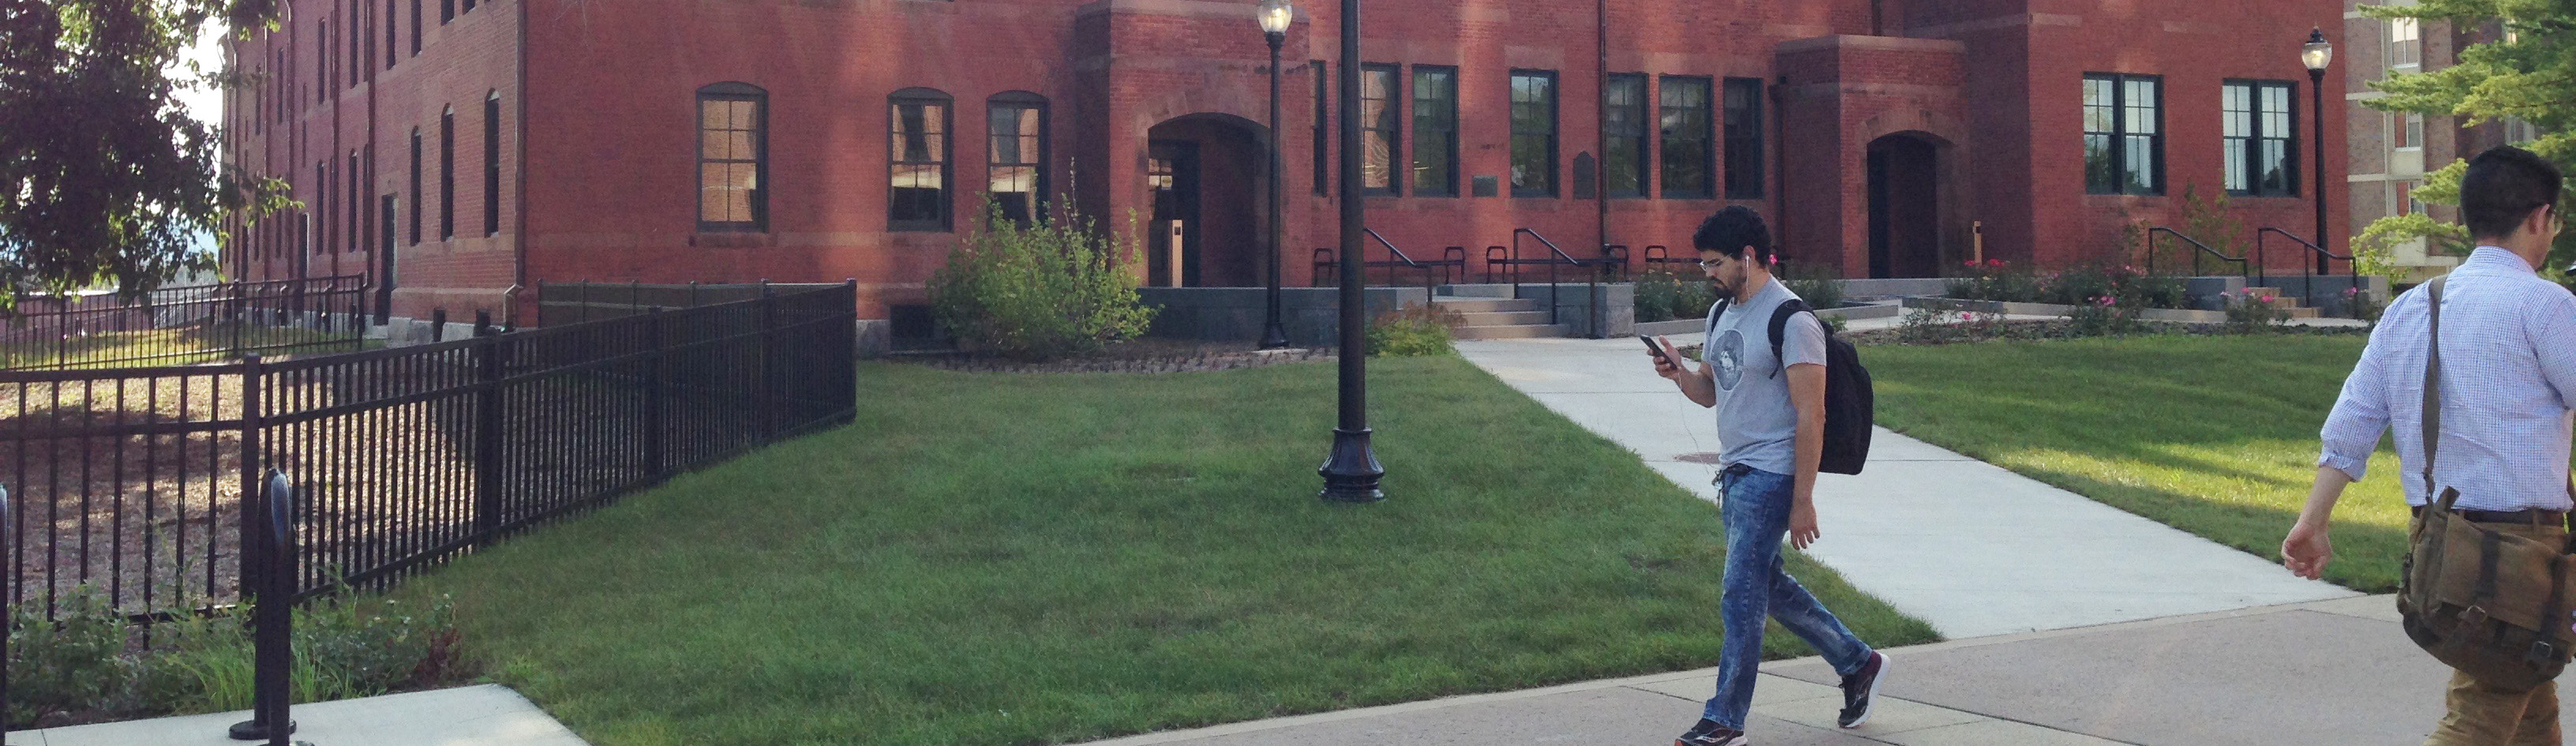 A student wearing a backpack walks past the South College building.